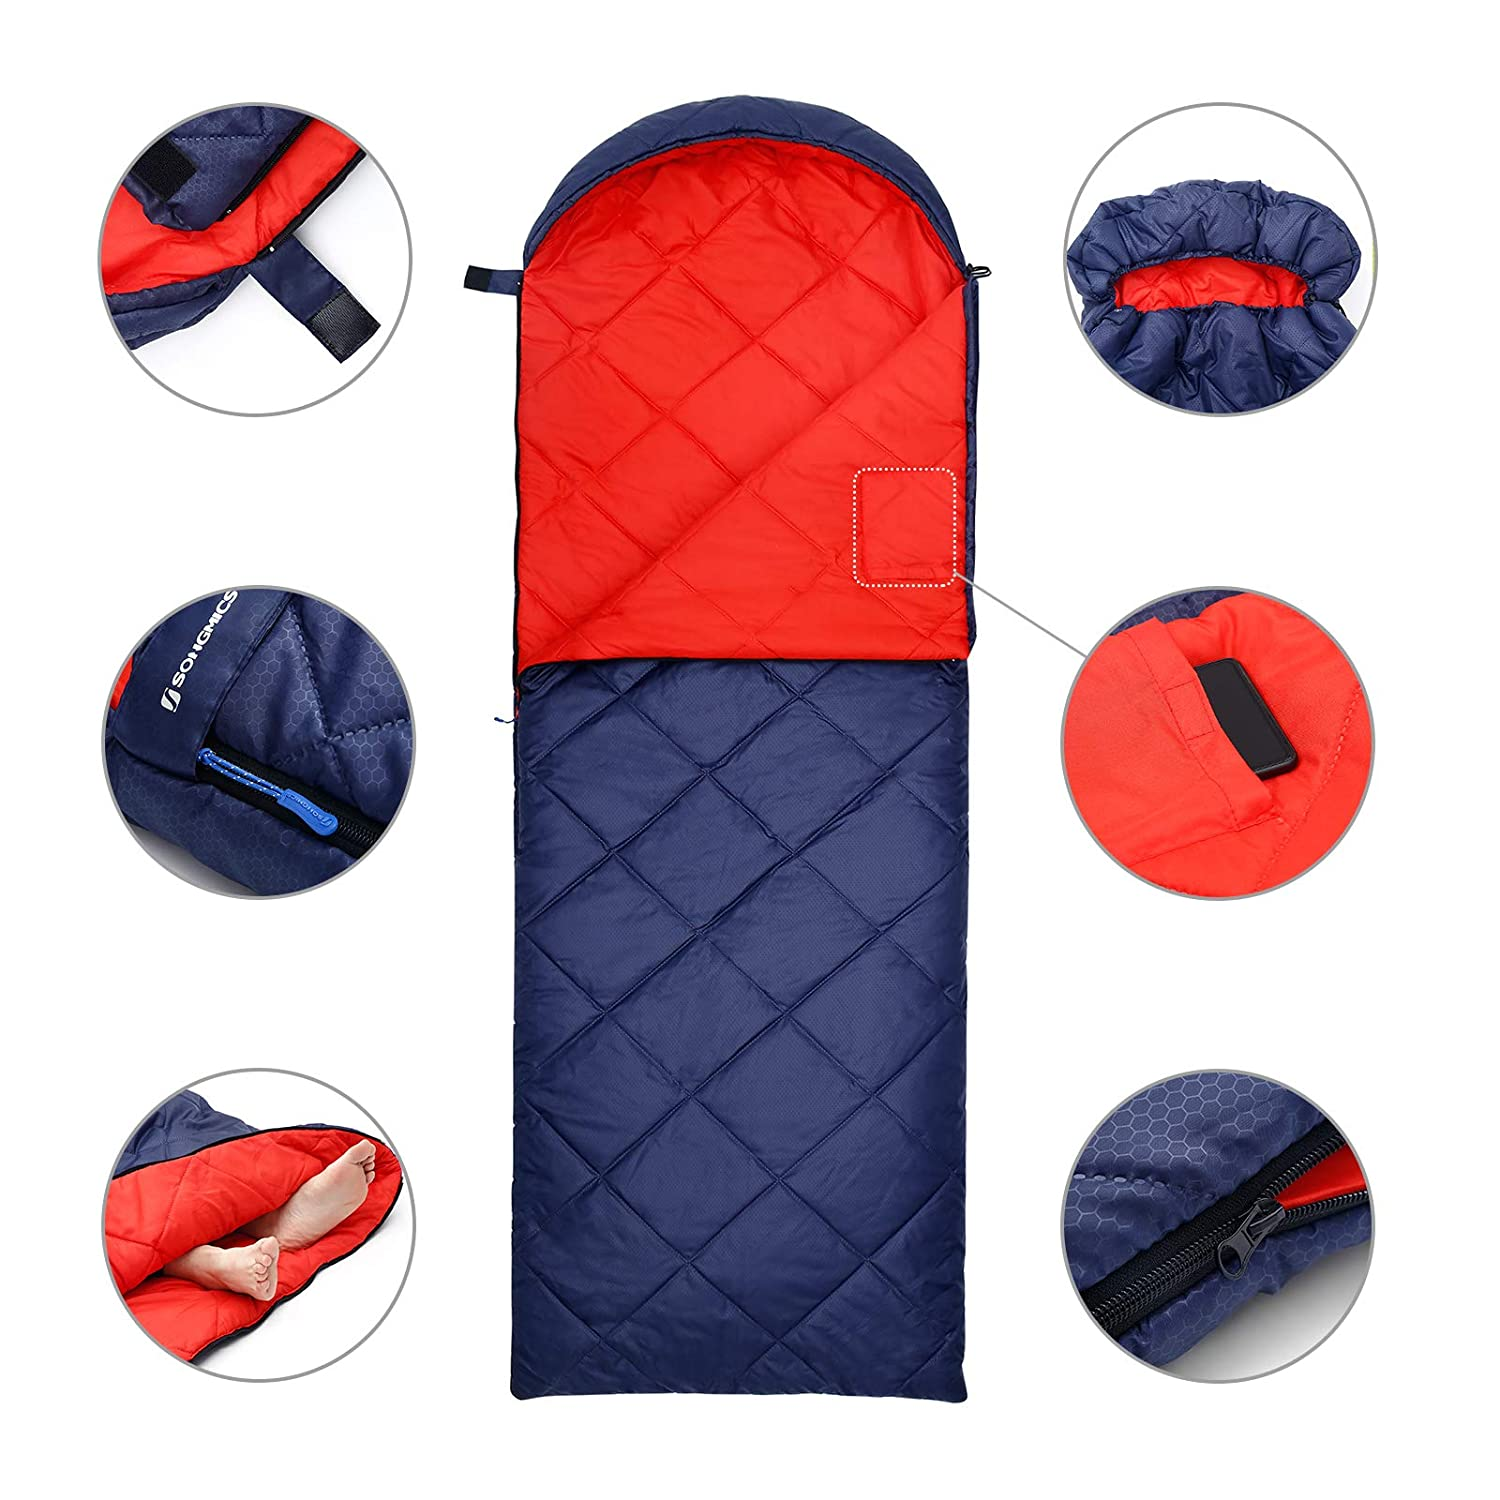 SONGMICS Camping Sleeping Bag with Compression Sack Compact Lightweight Easy to Carry Ultrasonic Stitch Comfort Temp 5-15/°C Camping 4 Seasons Dark Blue GSB20QR Hiking